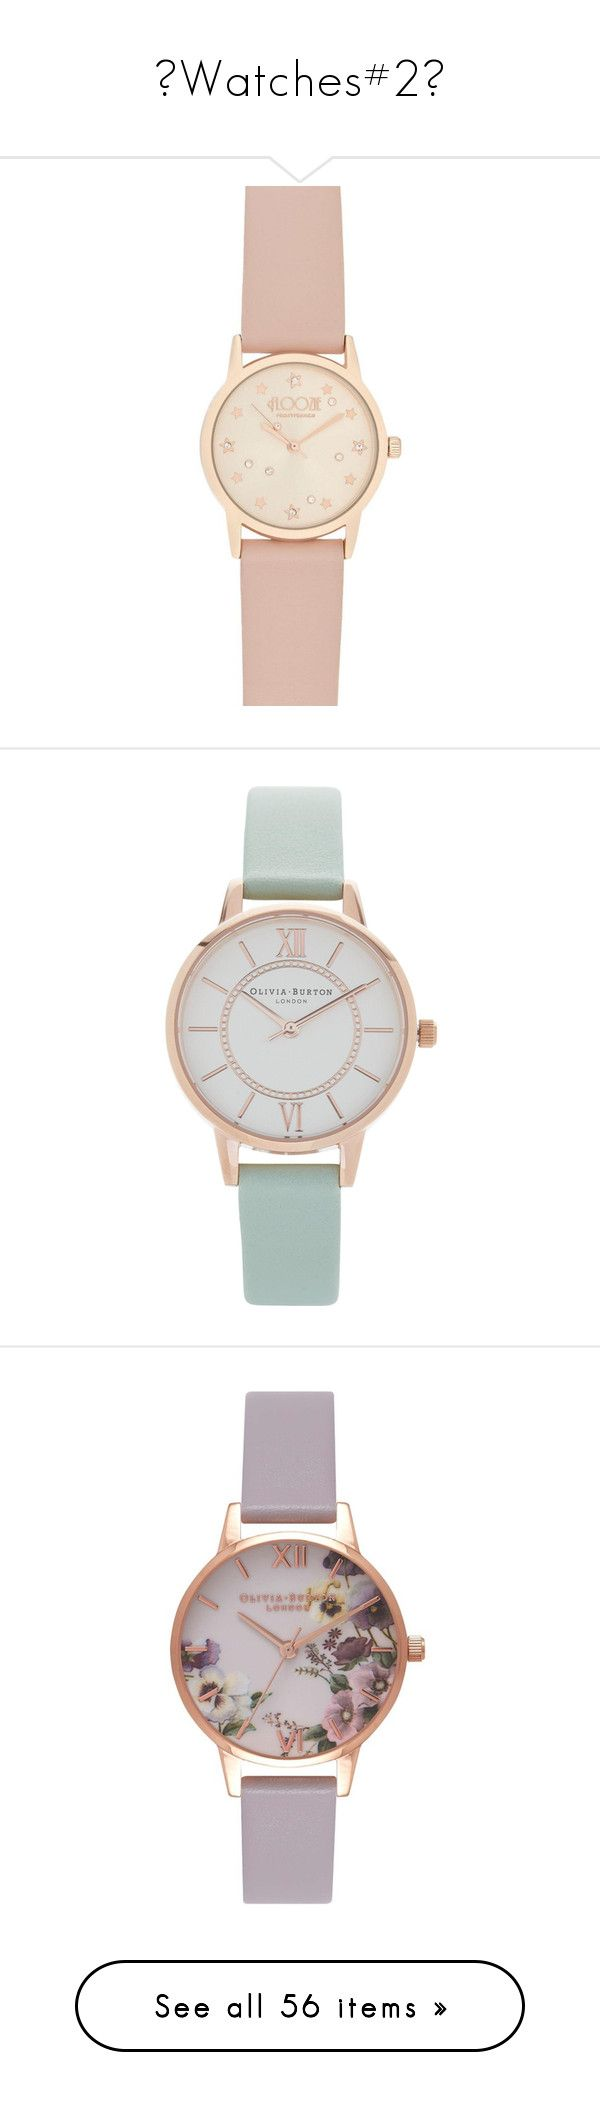 """♥Watches#2♥"" by lessalice ❤ liked on Polyvore featuring jewelry, watches, star jewelry, round watches, dial watches, accessories, mint, leather-strap watches, mint jewelry and rose watches"